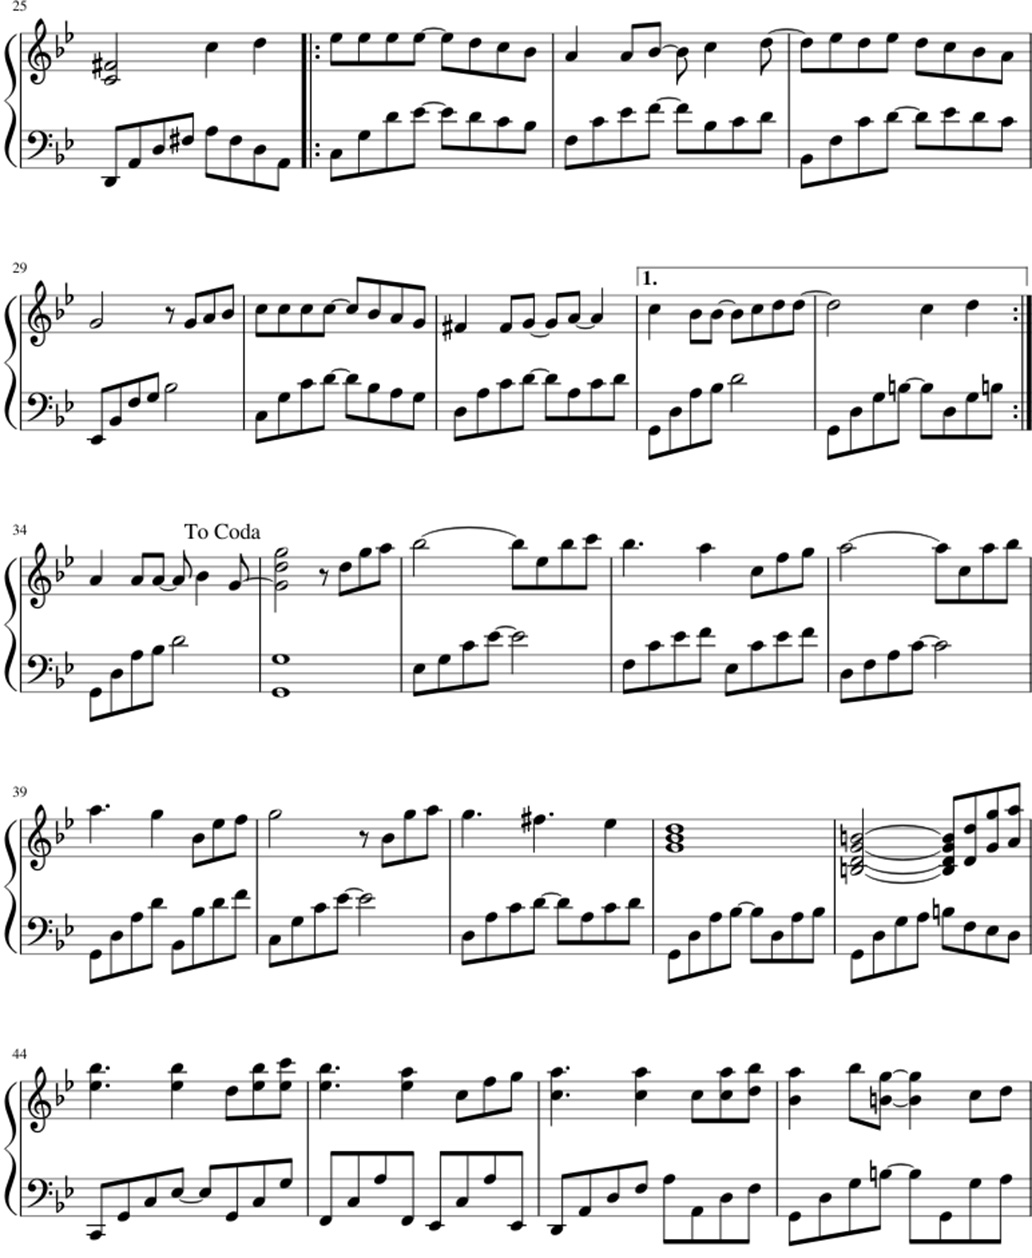 From the beginning until now sheet music notes 2